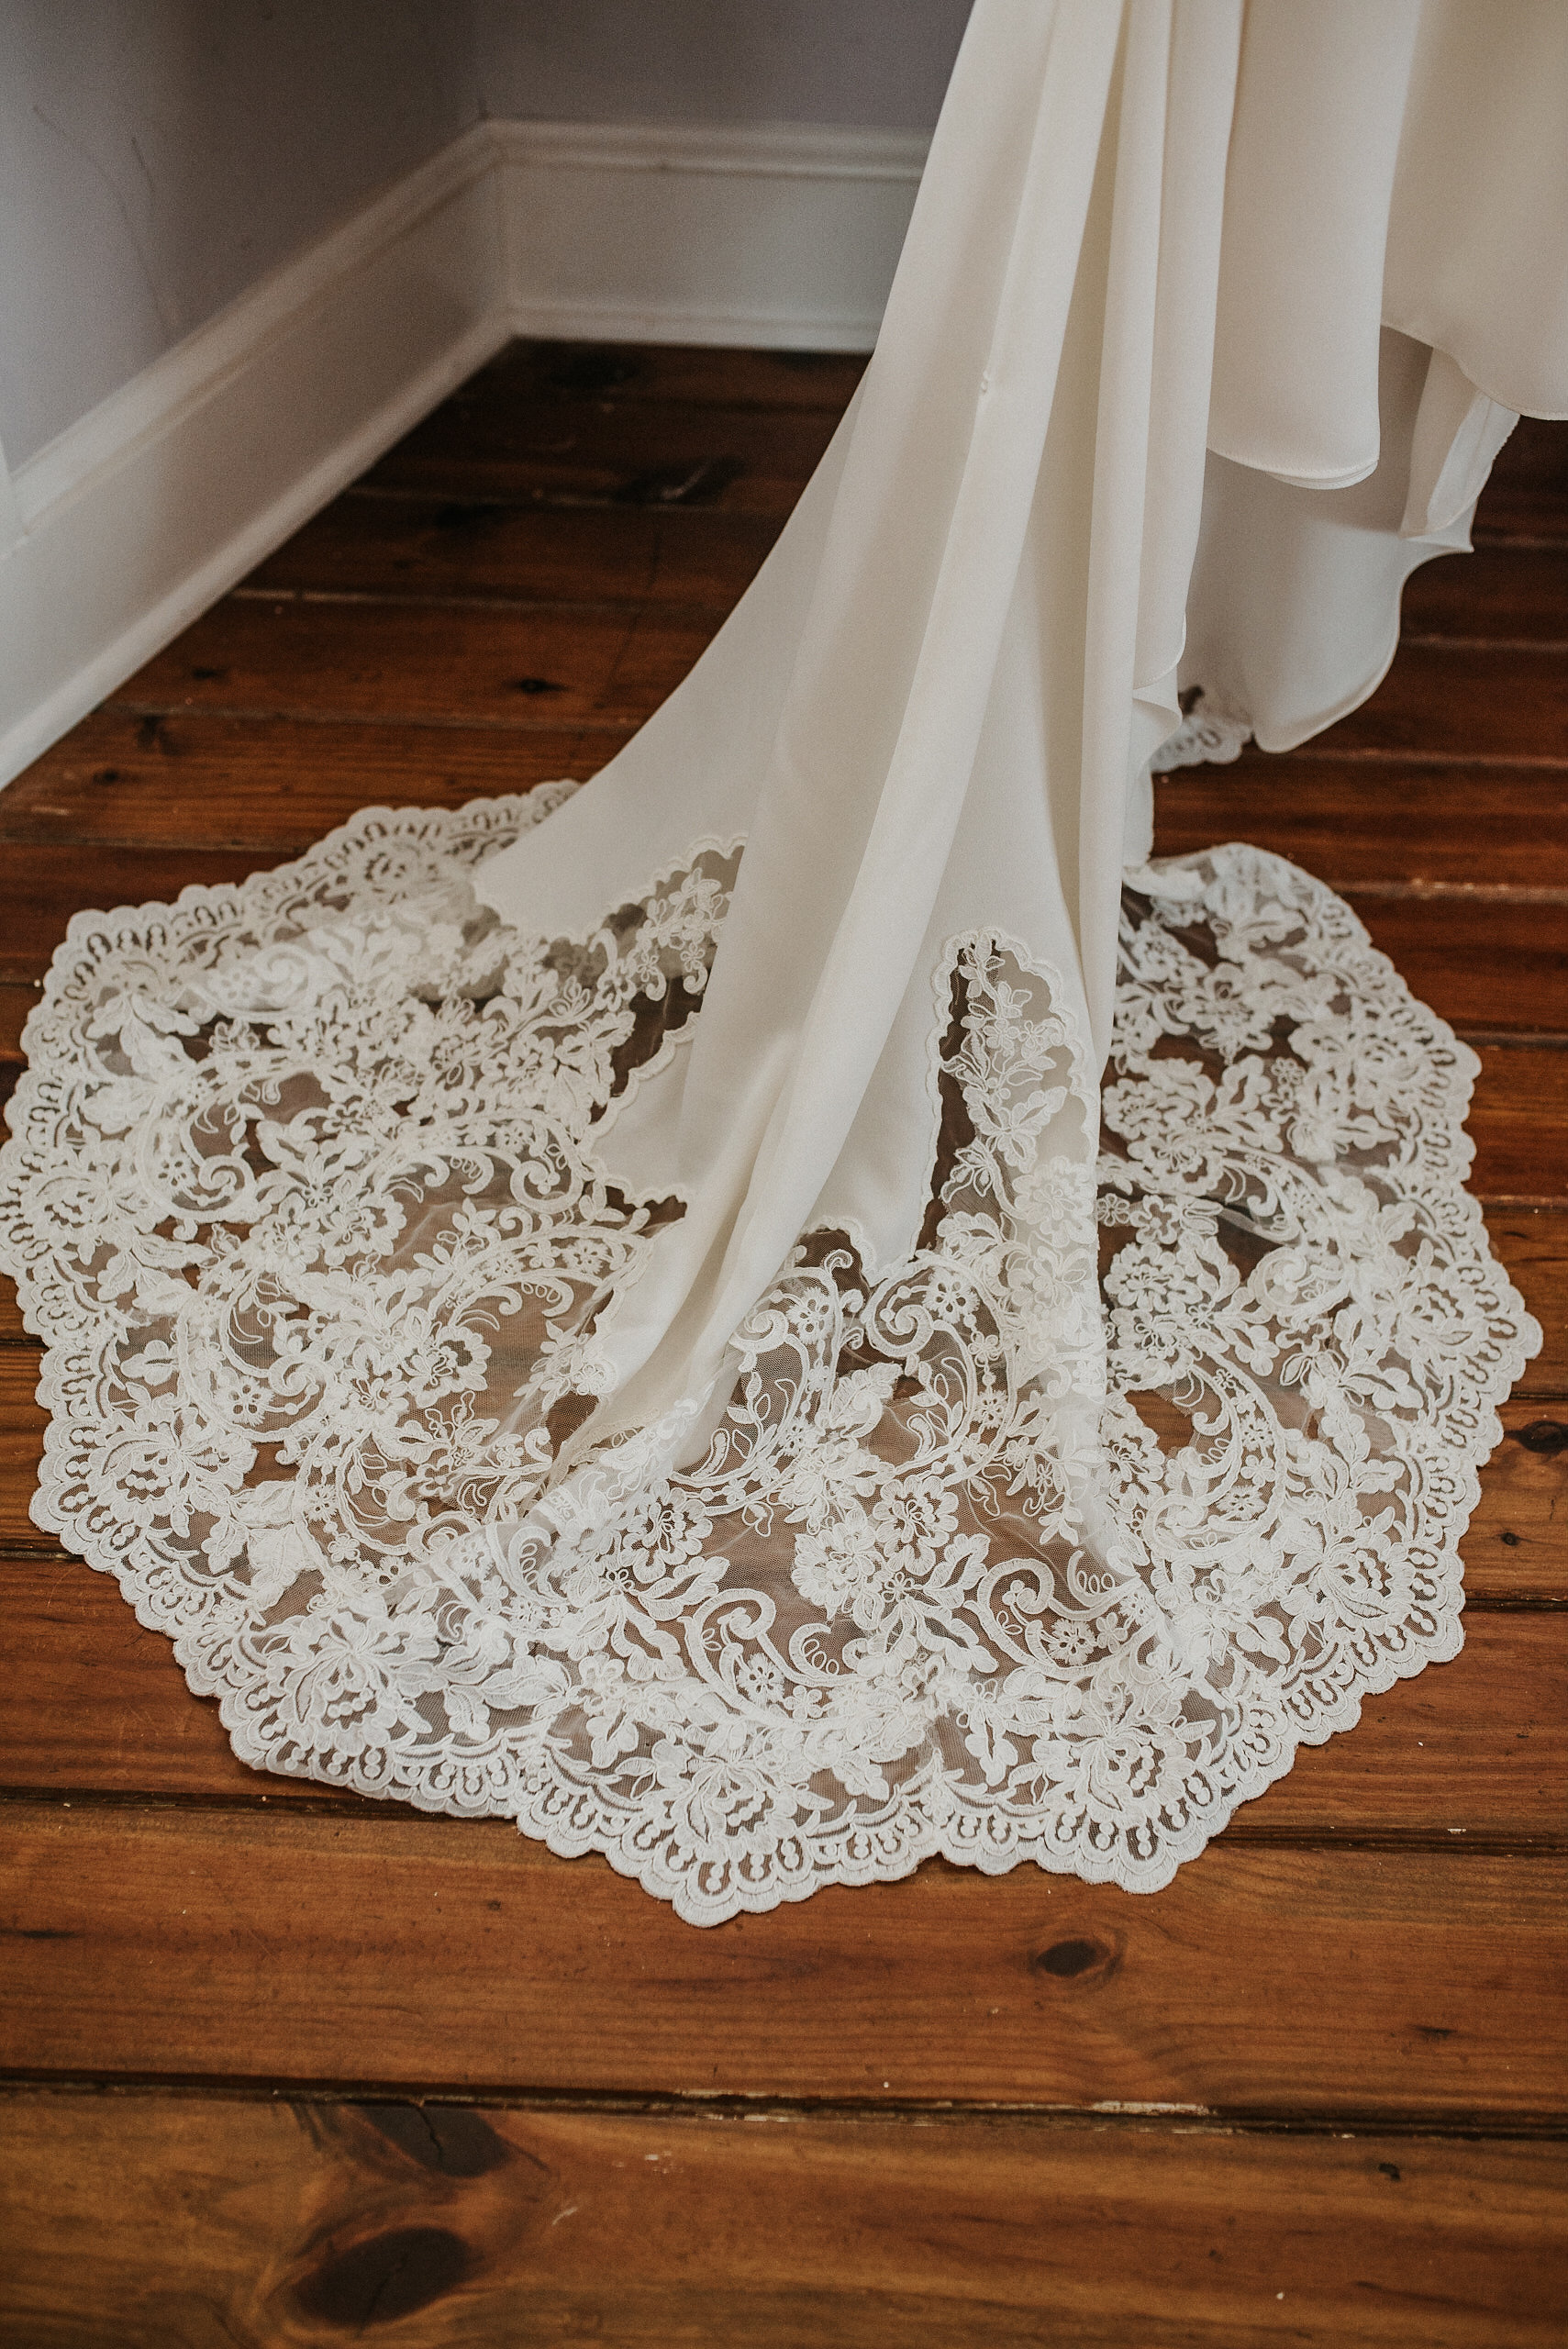 Lace train for wedding dress